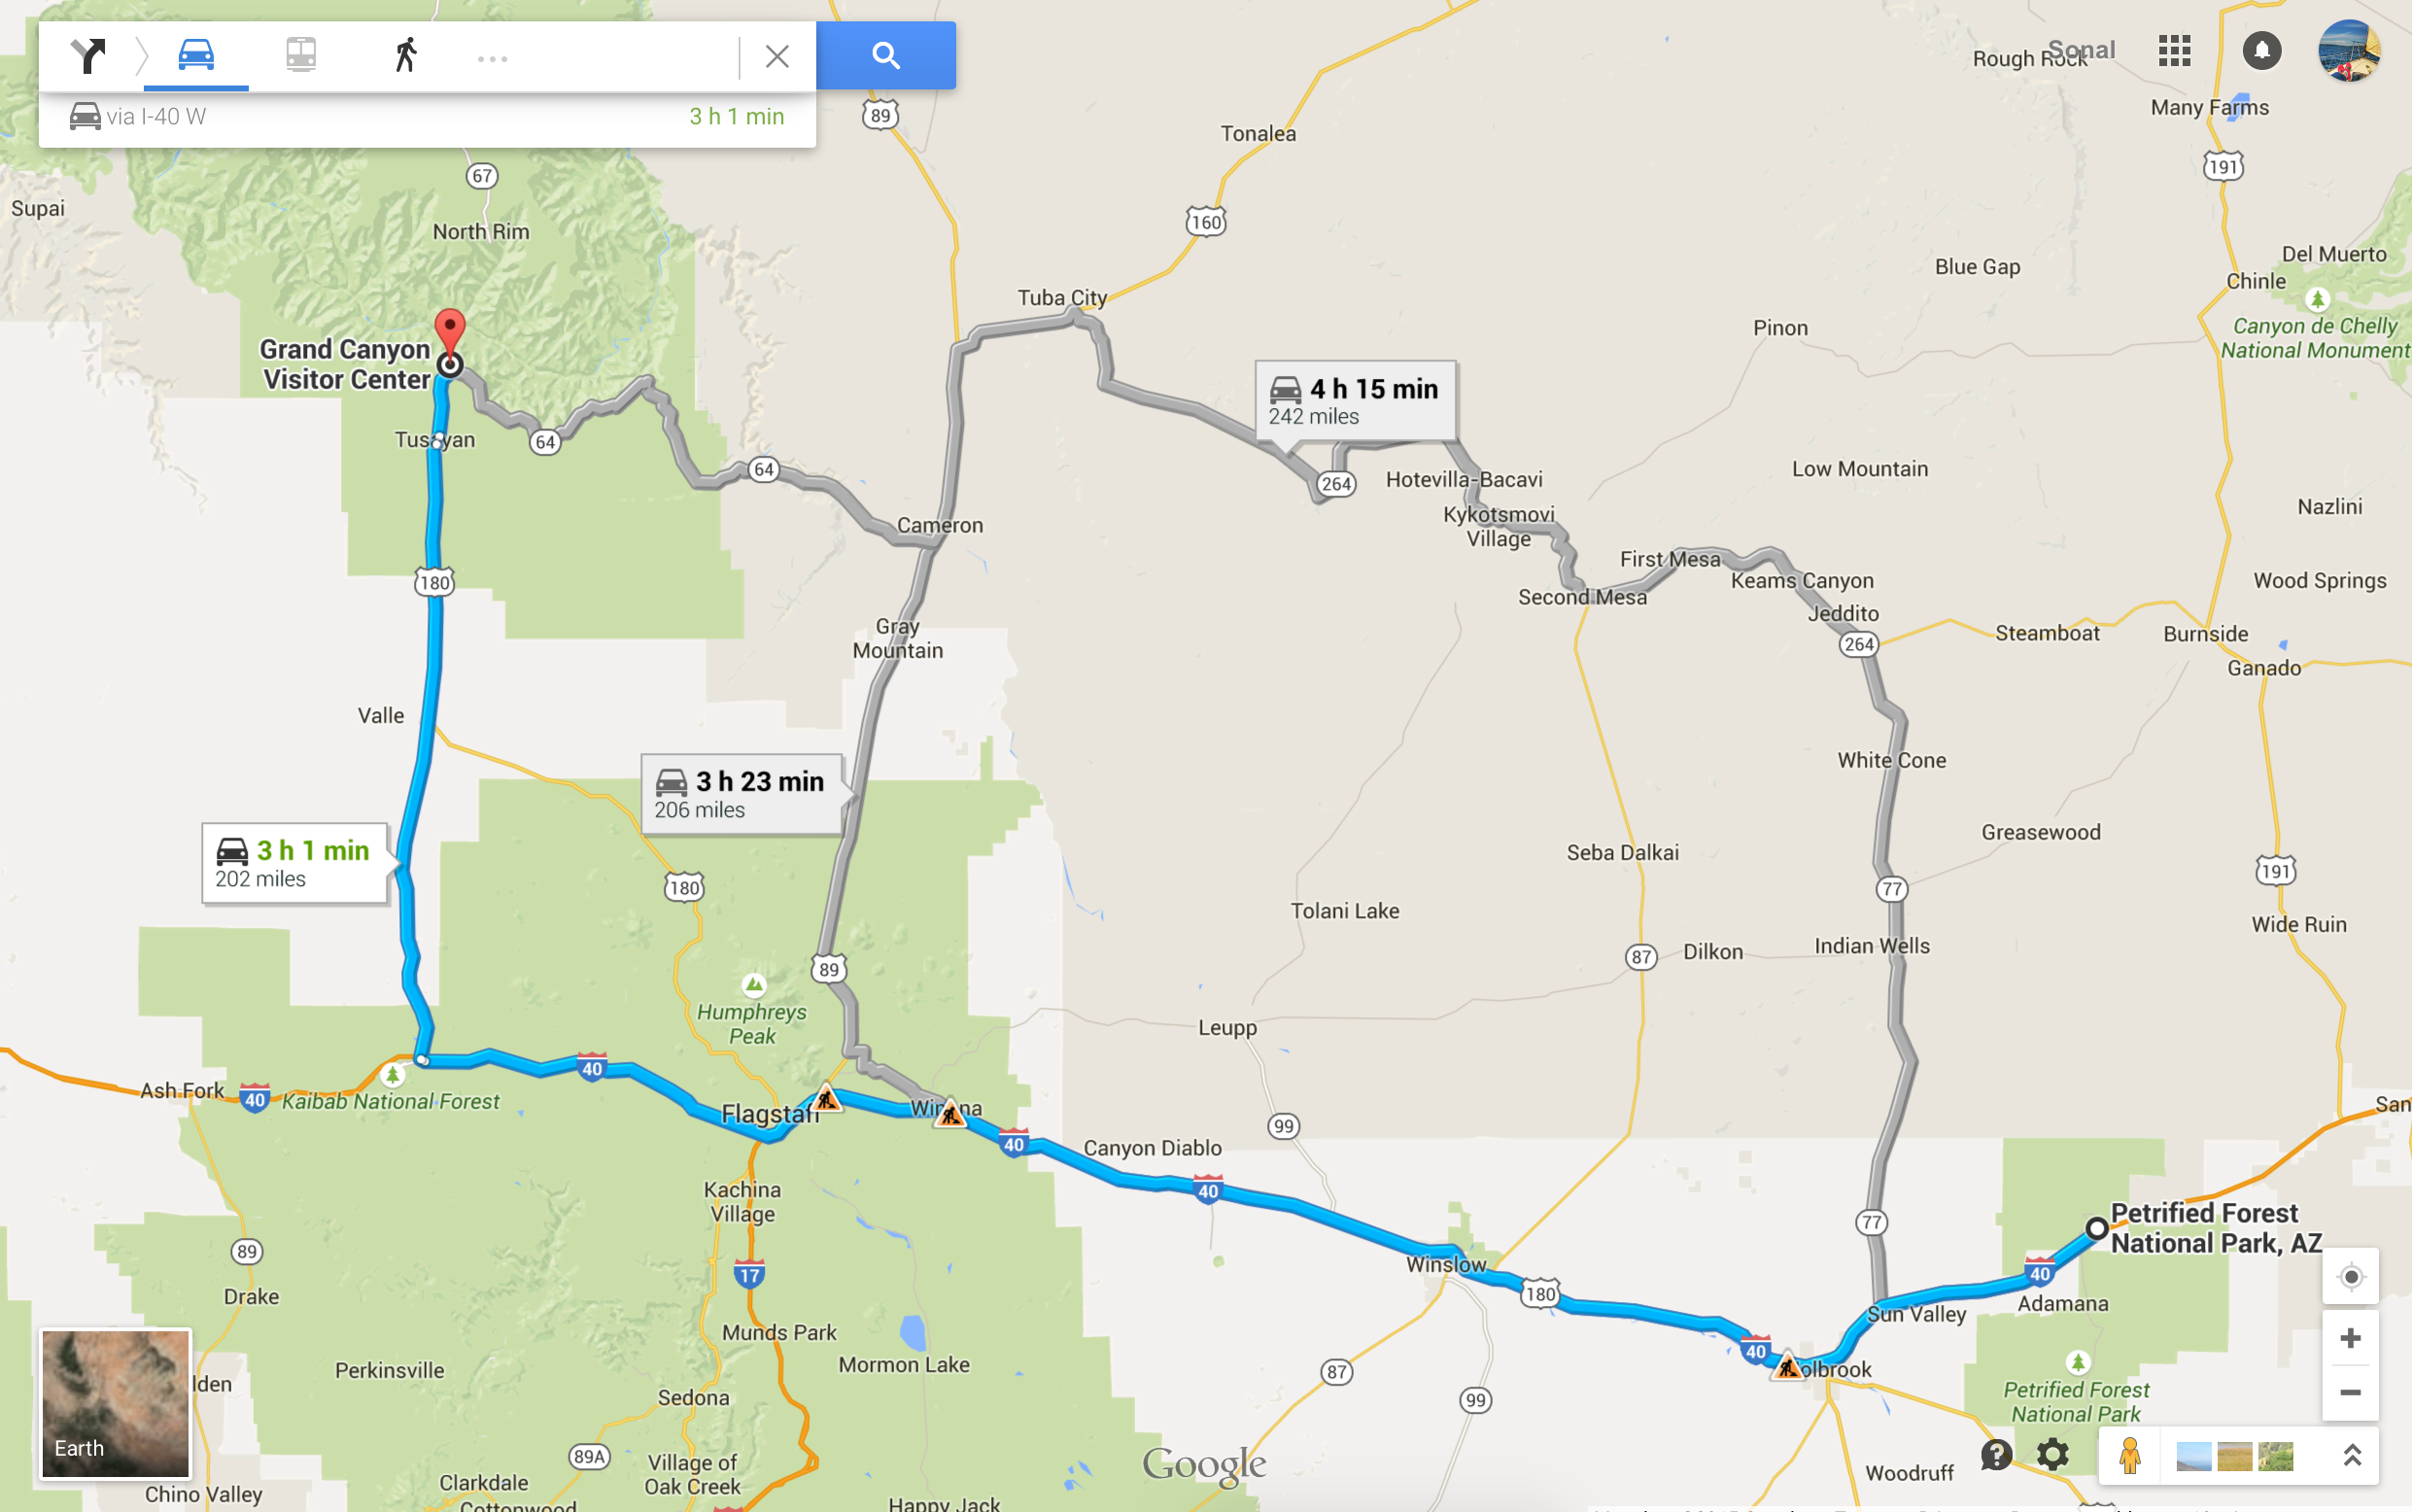 Directions from Petrified Forest to Grand Canyon via the highlighted blue route.